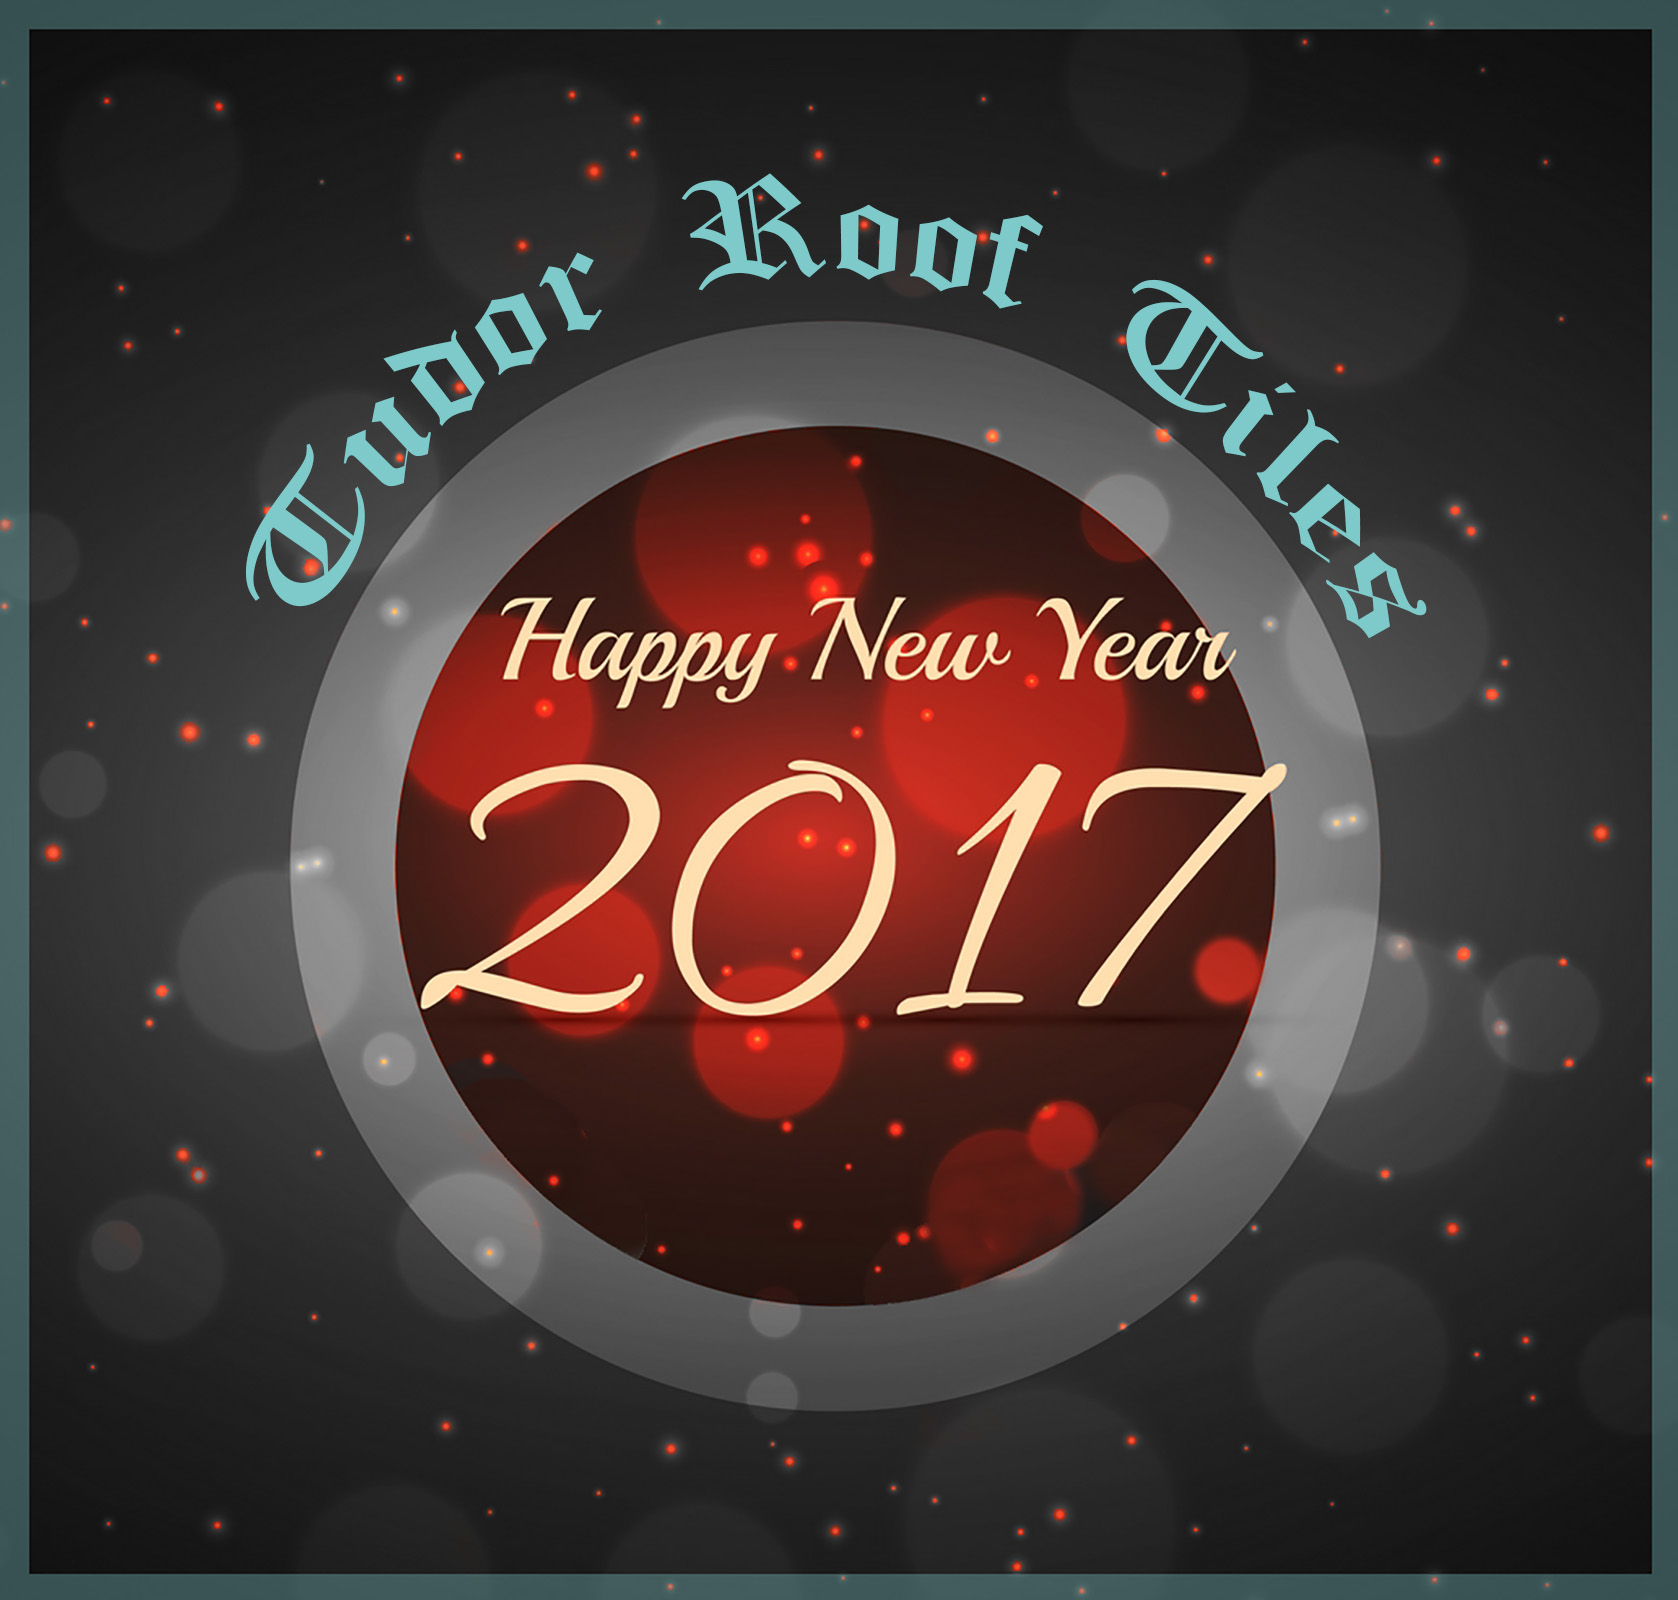 Happy 2017 from Tudor Roof Tiles